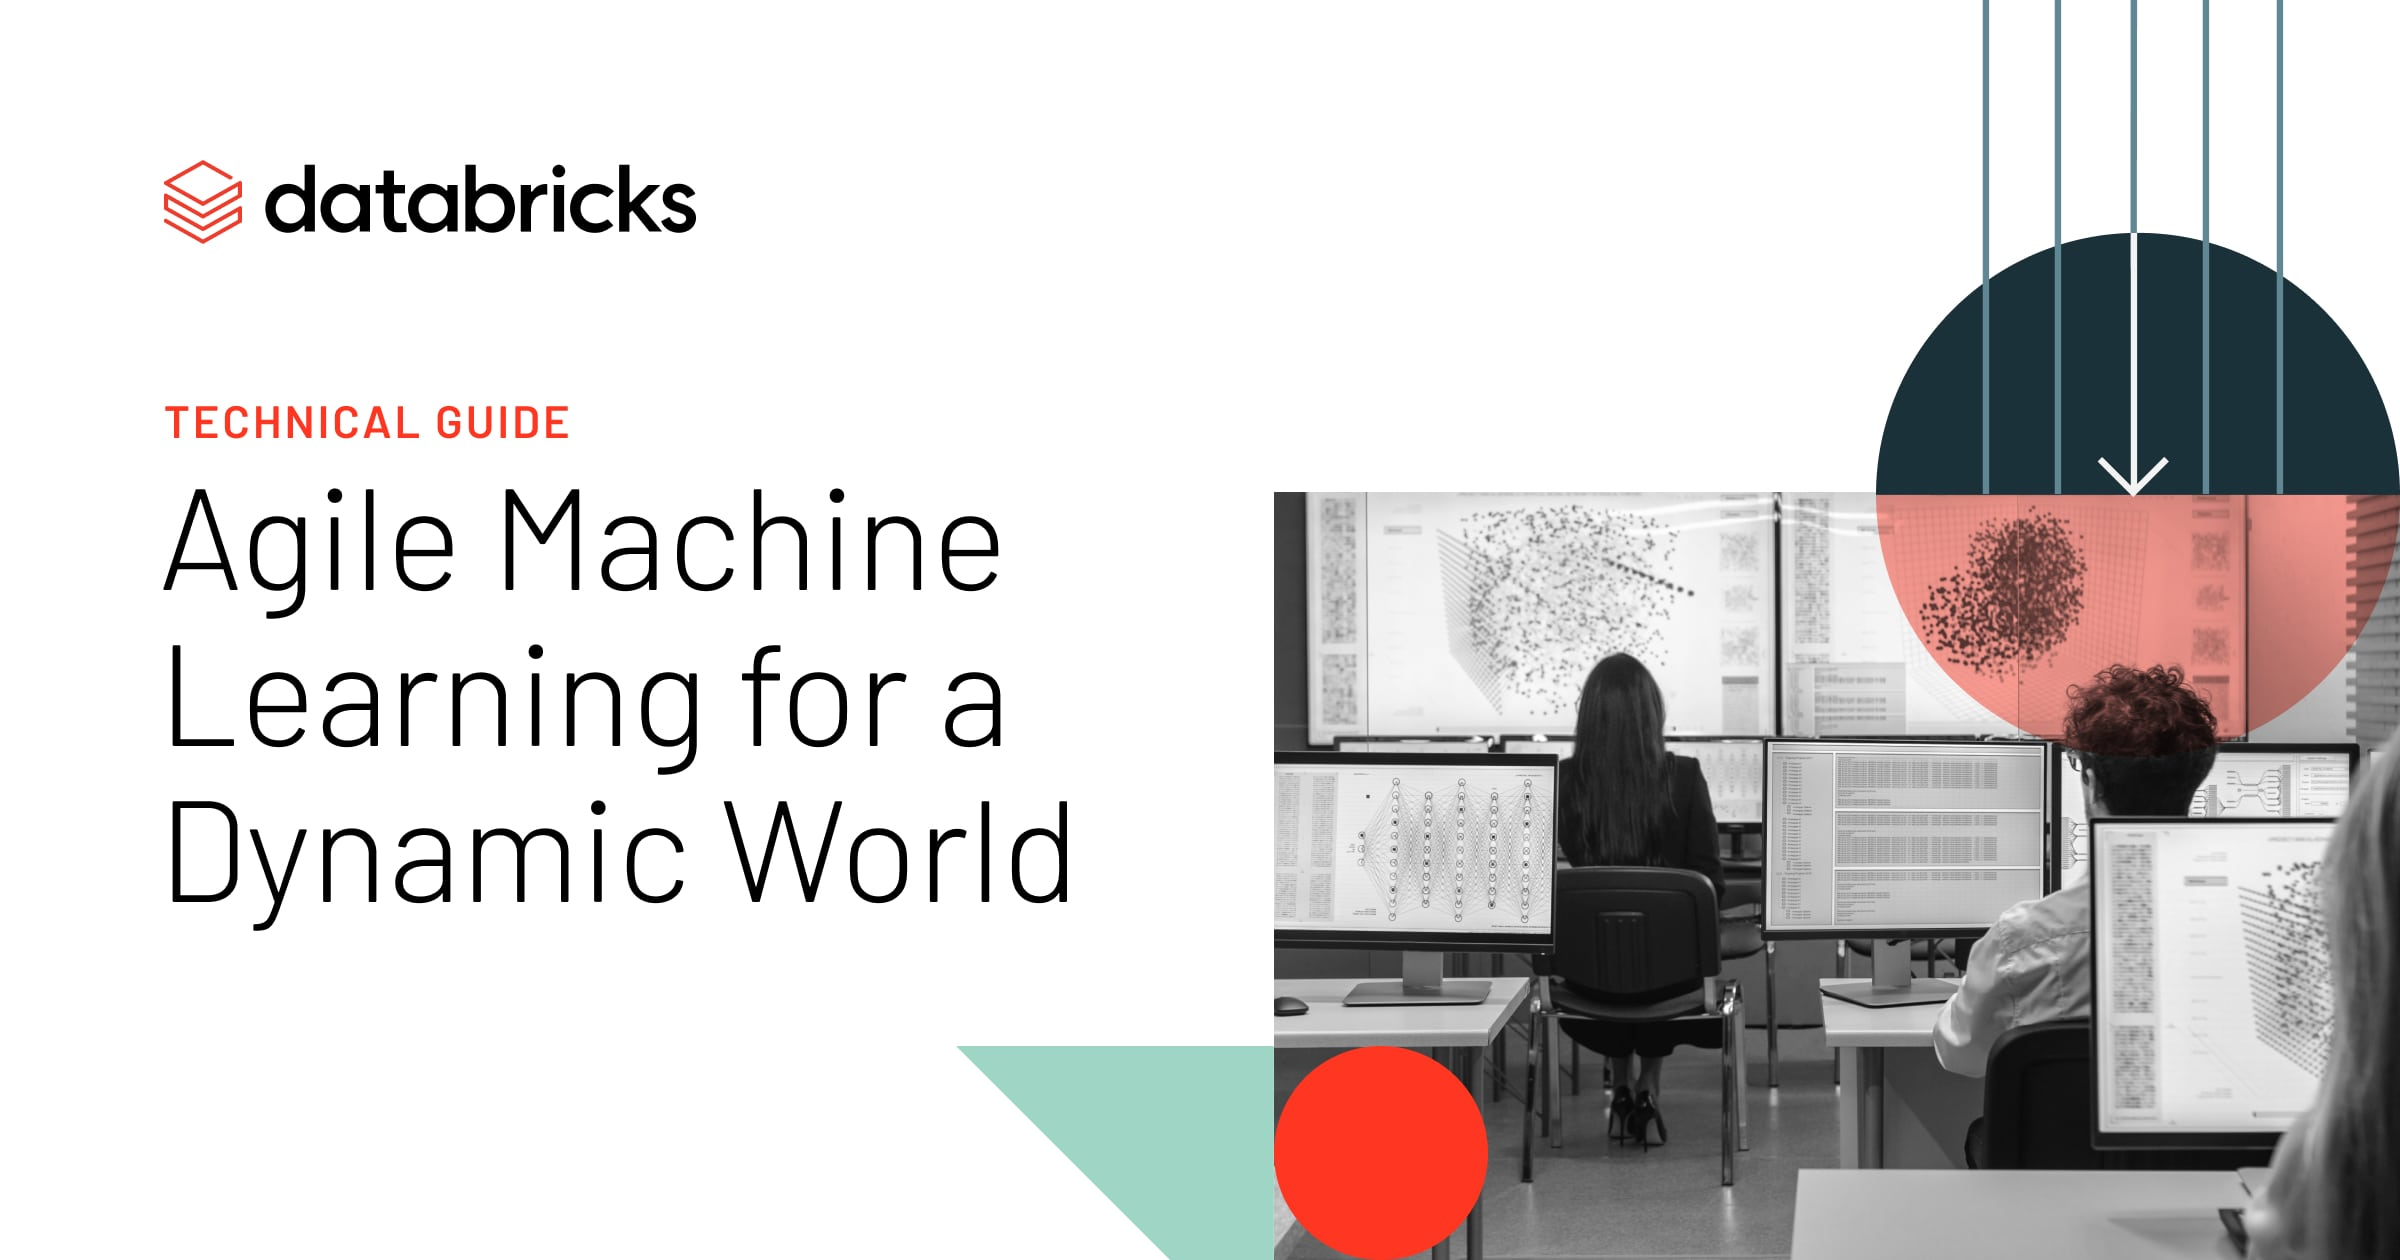 Thumbnail for Agile Machine Learning for a Dynamic World